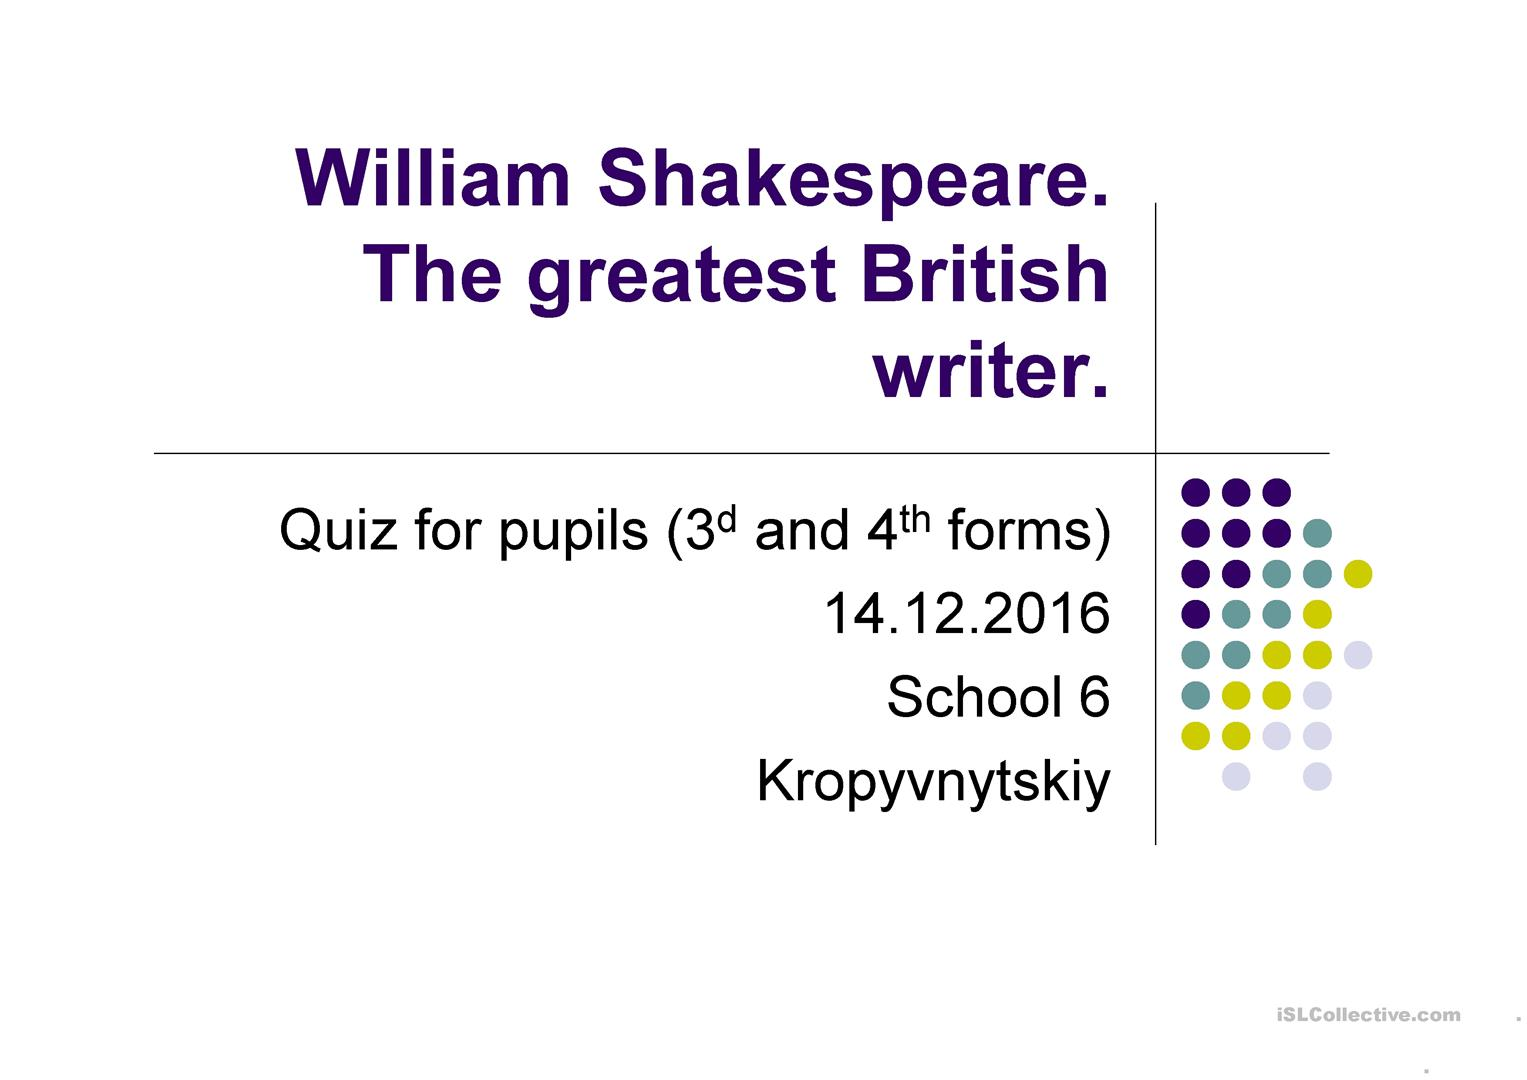 William Shakespeare Quiz For 3d 4th Formers